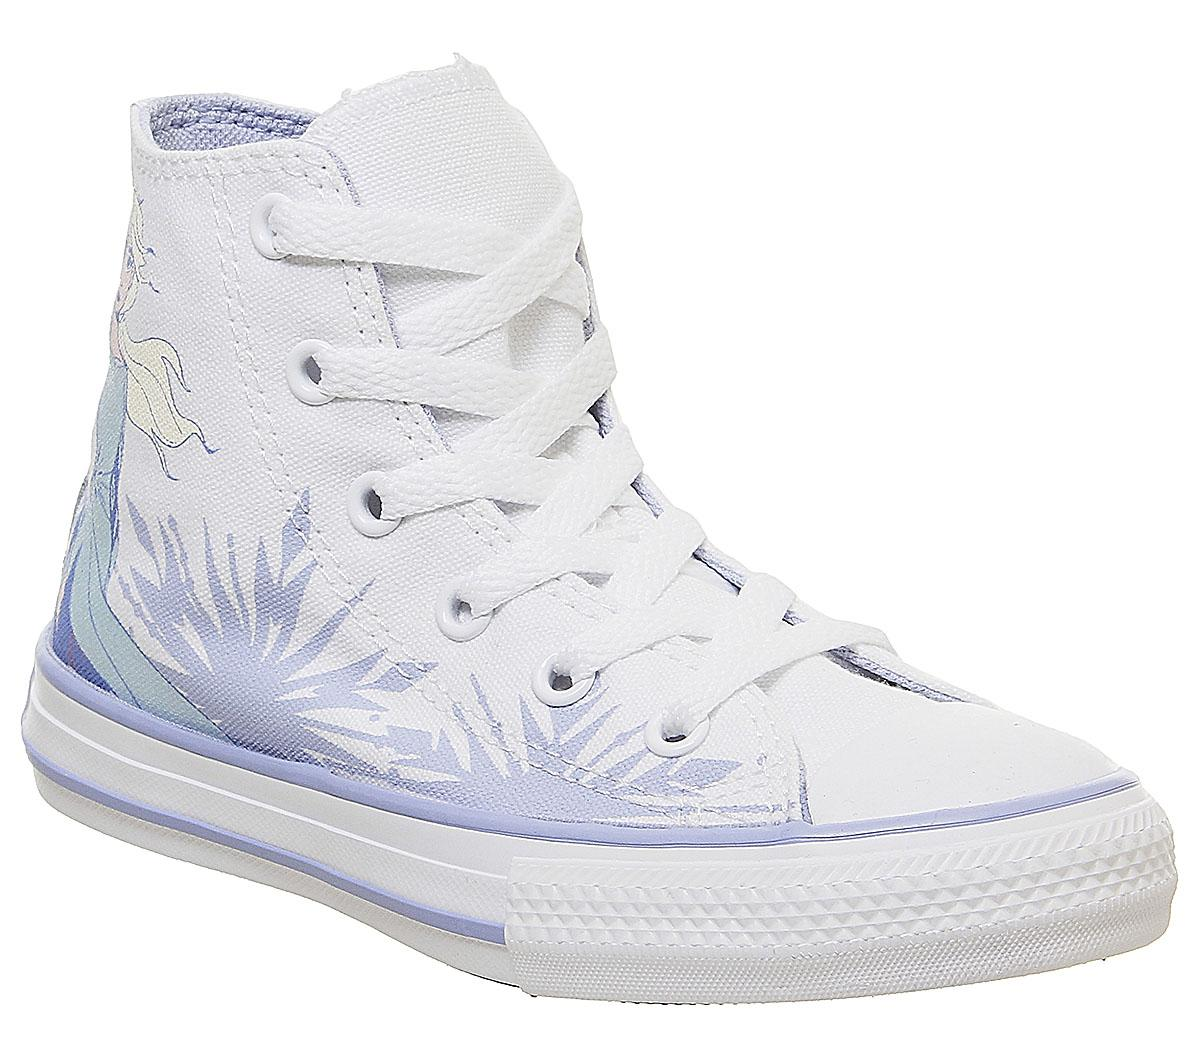 Converse All Star Hi Mid Sizes Trainers White Multi Elsa